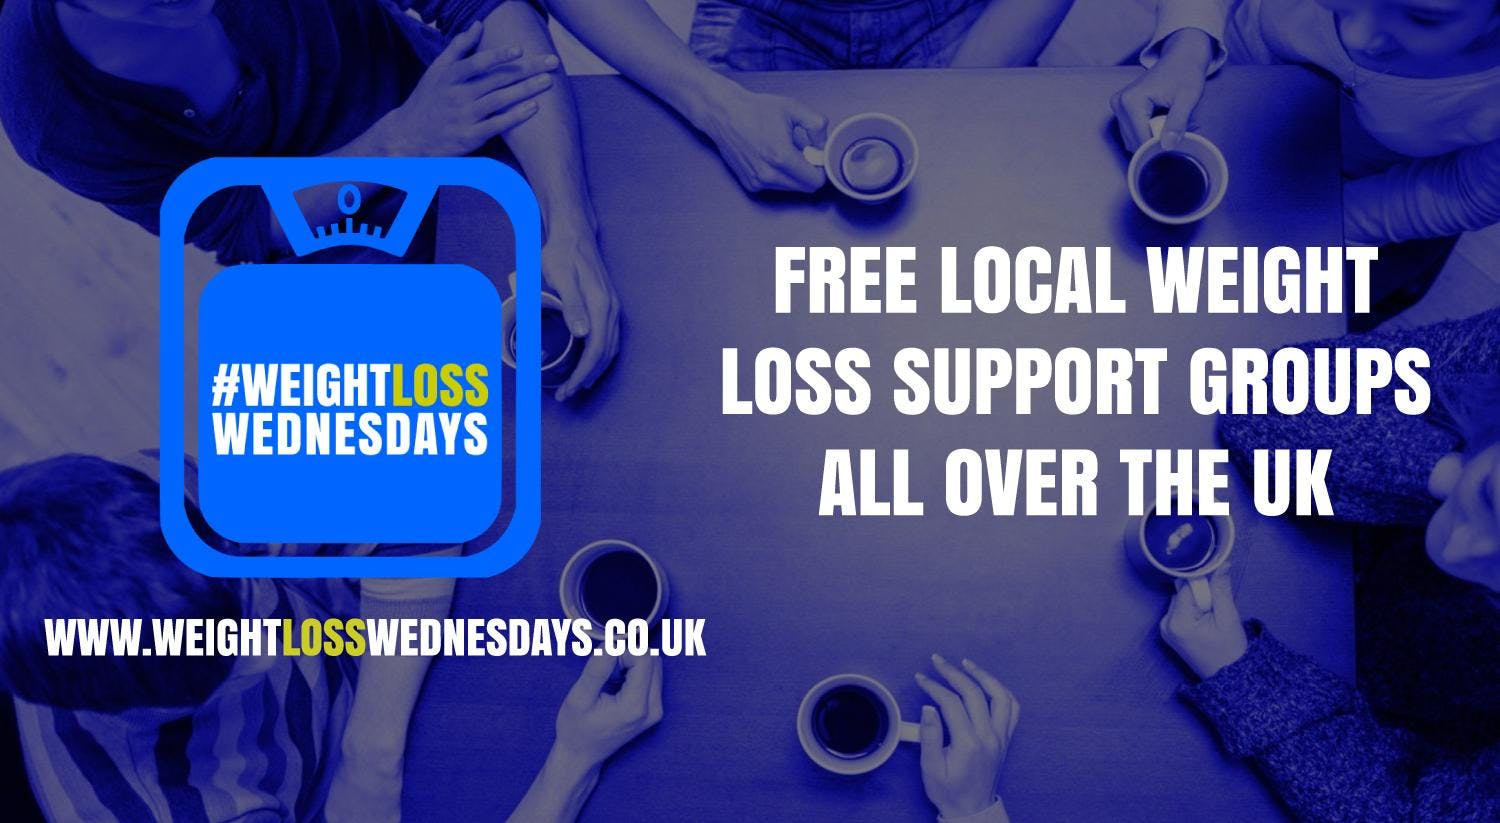 WEIGHT LOSS WEDNESDAYS! Free weekly support group in Shipley